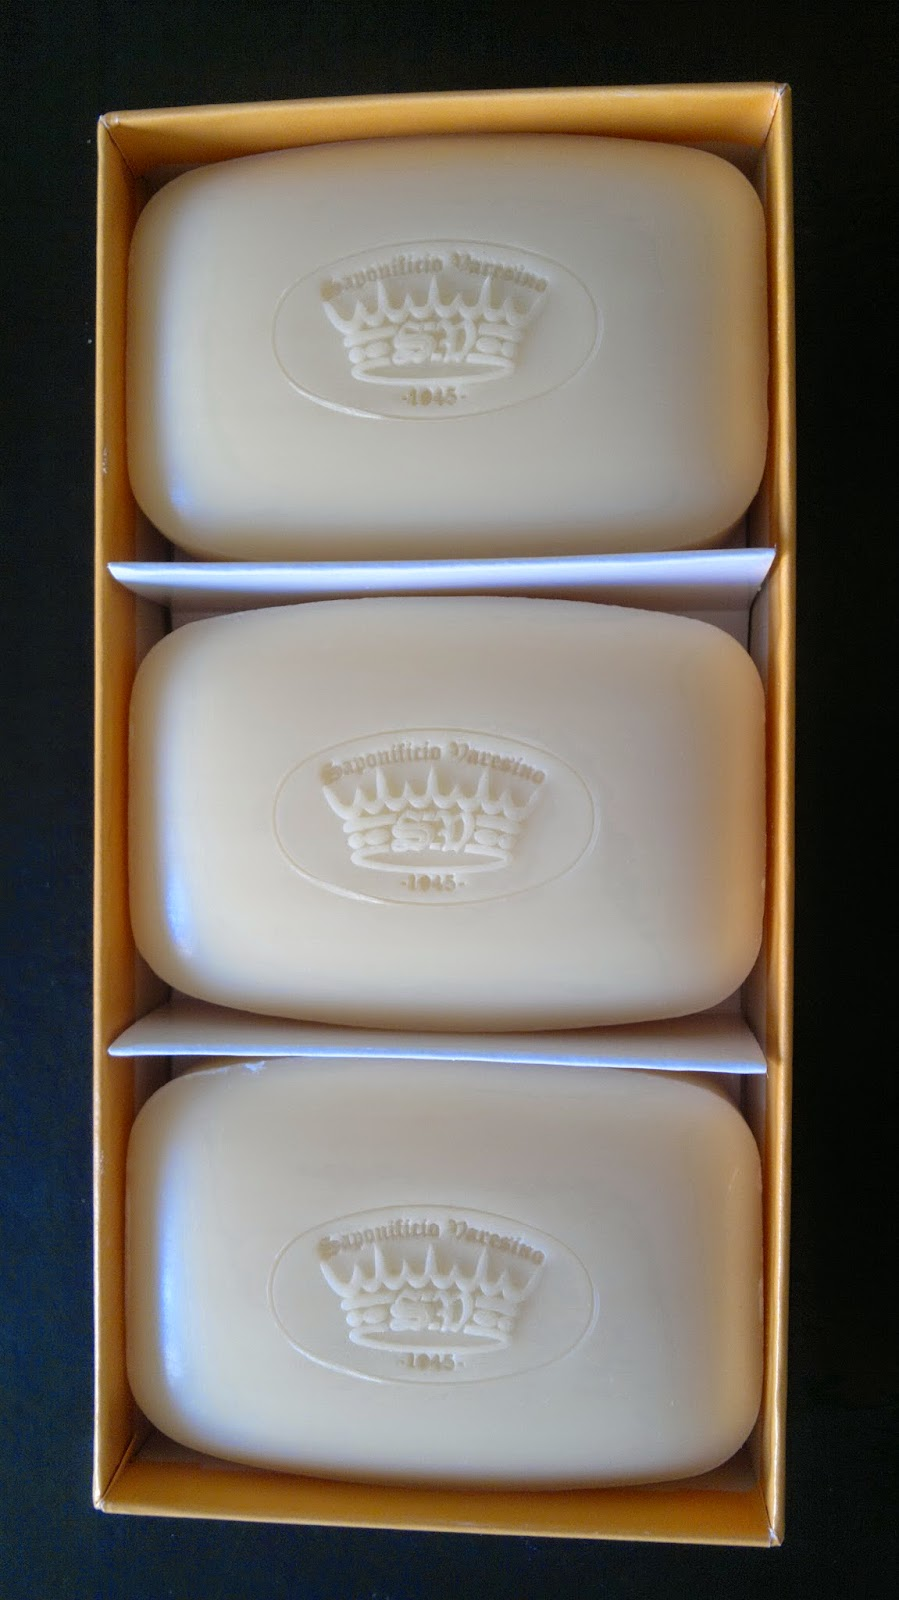 3x150 grams soap gift set made in italy